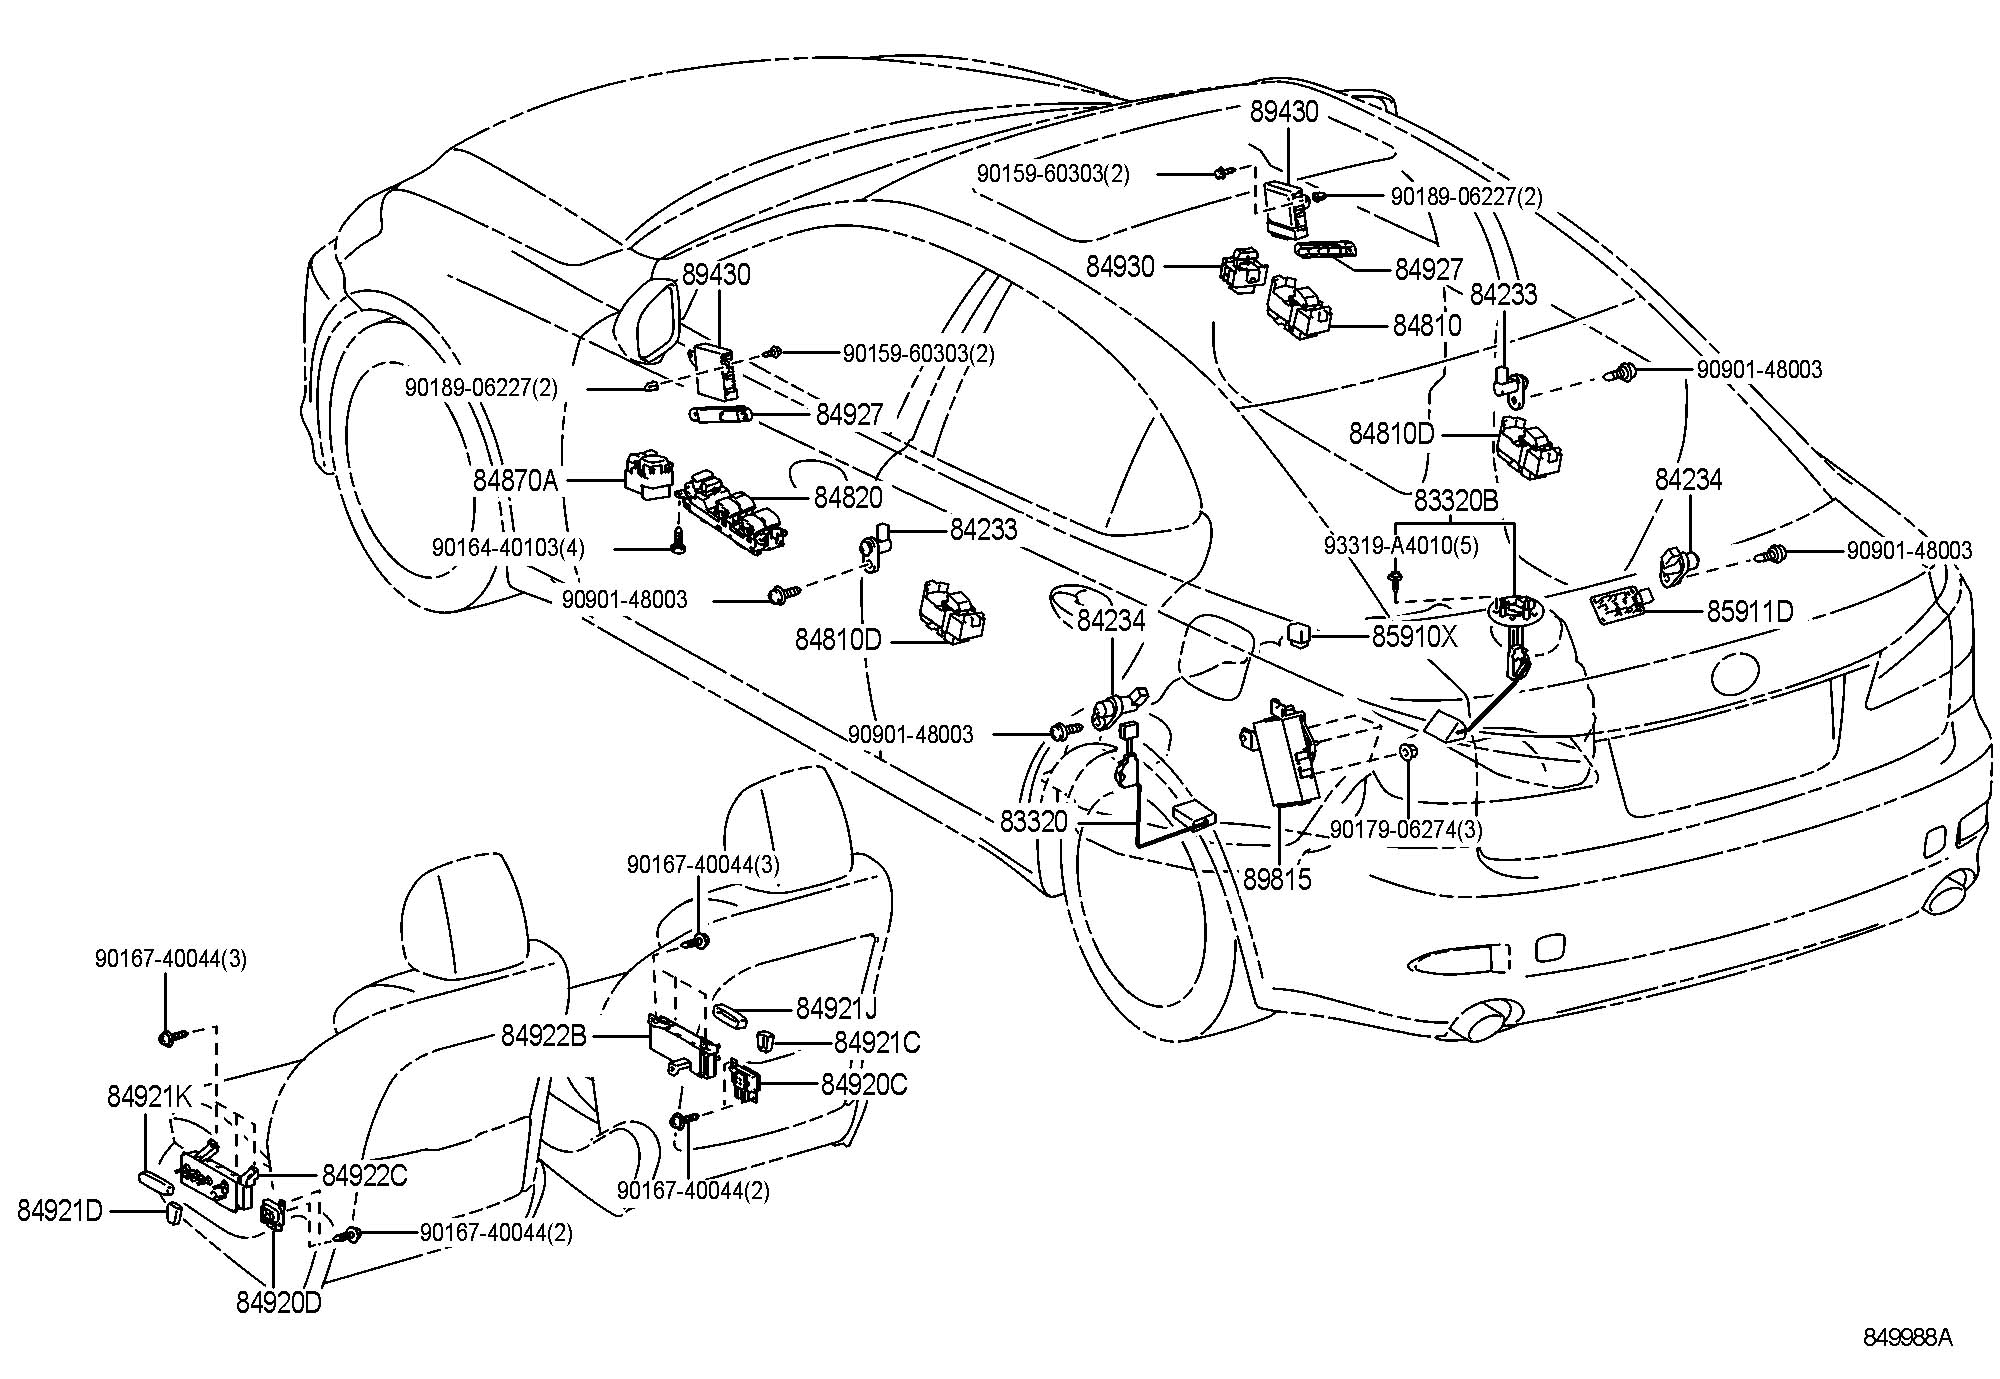 06 lexus gs300 fuse box diagram  lexus  auto fuse box diagram